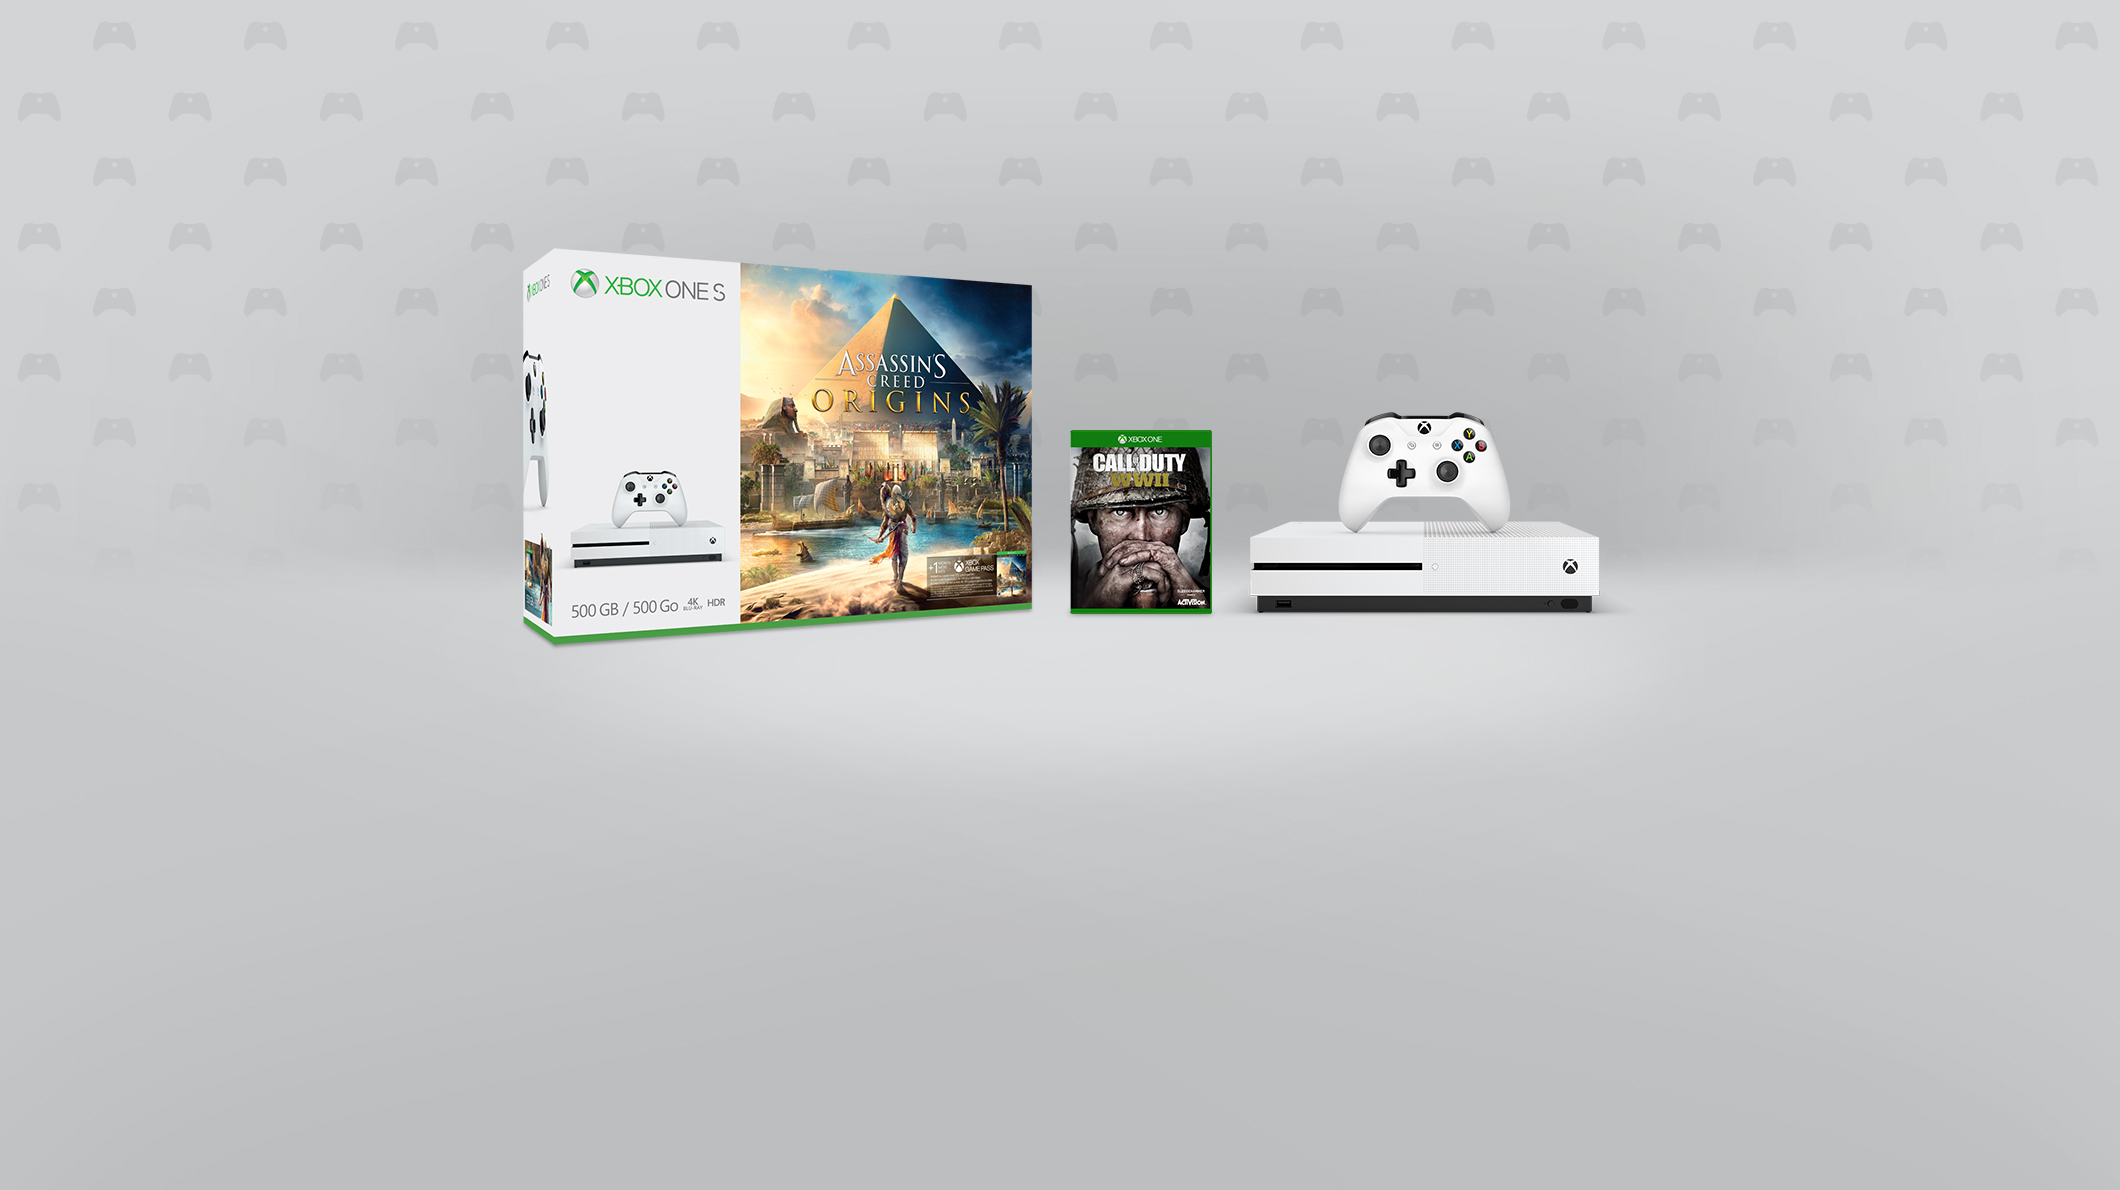 Jeu Call of Duty WWII, Assassin's Creed Origins, console Xbox One S